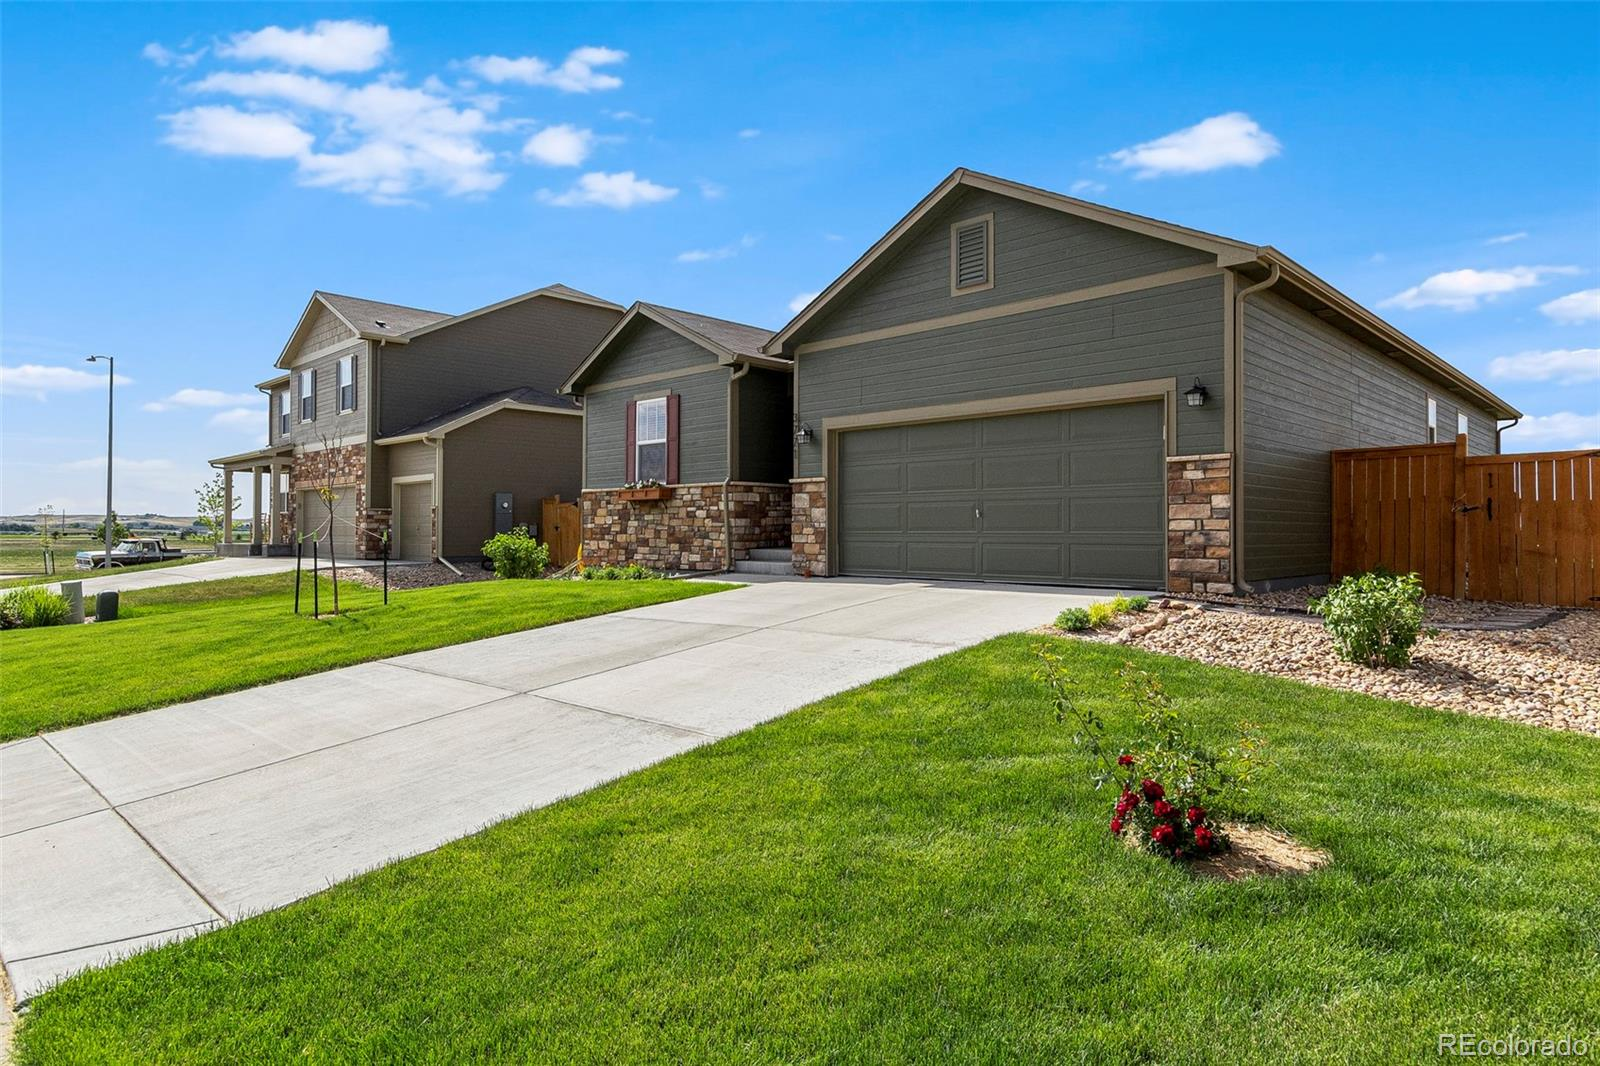 MLS# 2622320 - 4 - 3771 Torch Lily Street, Wellington, CO 80549